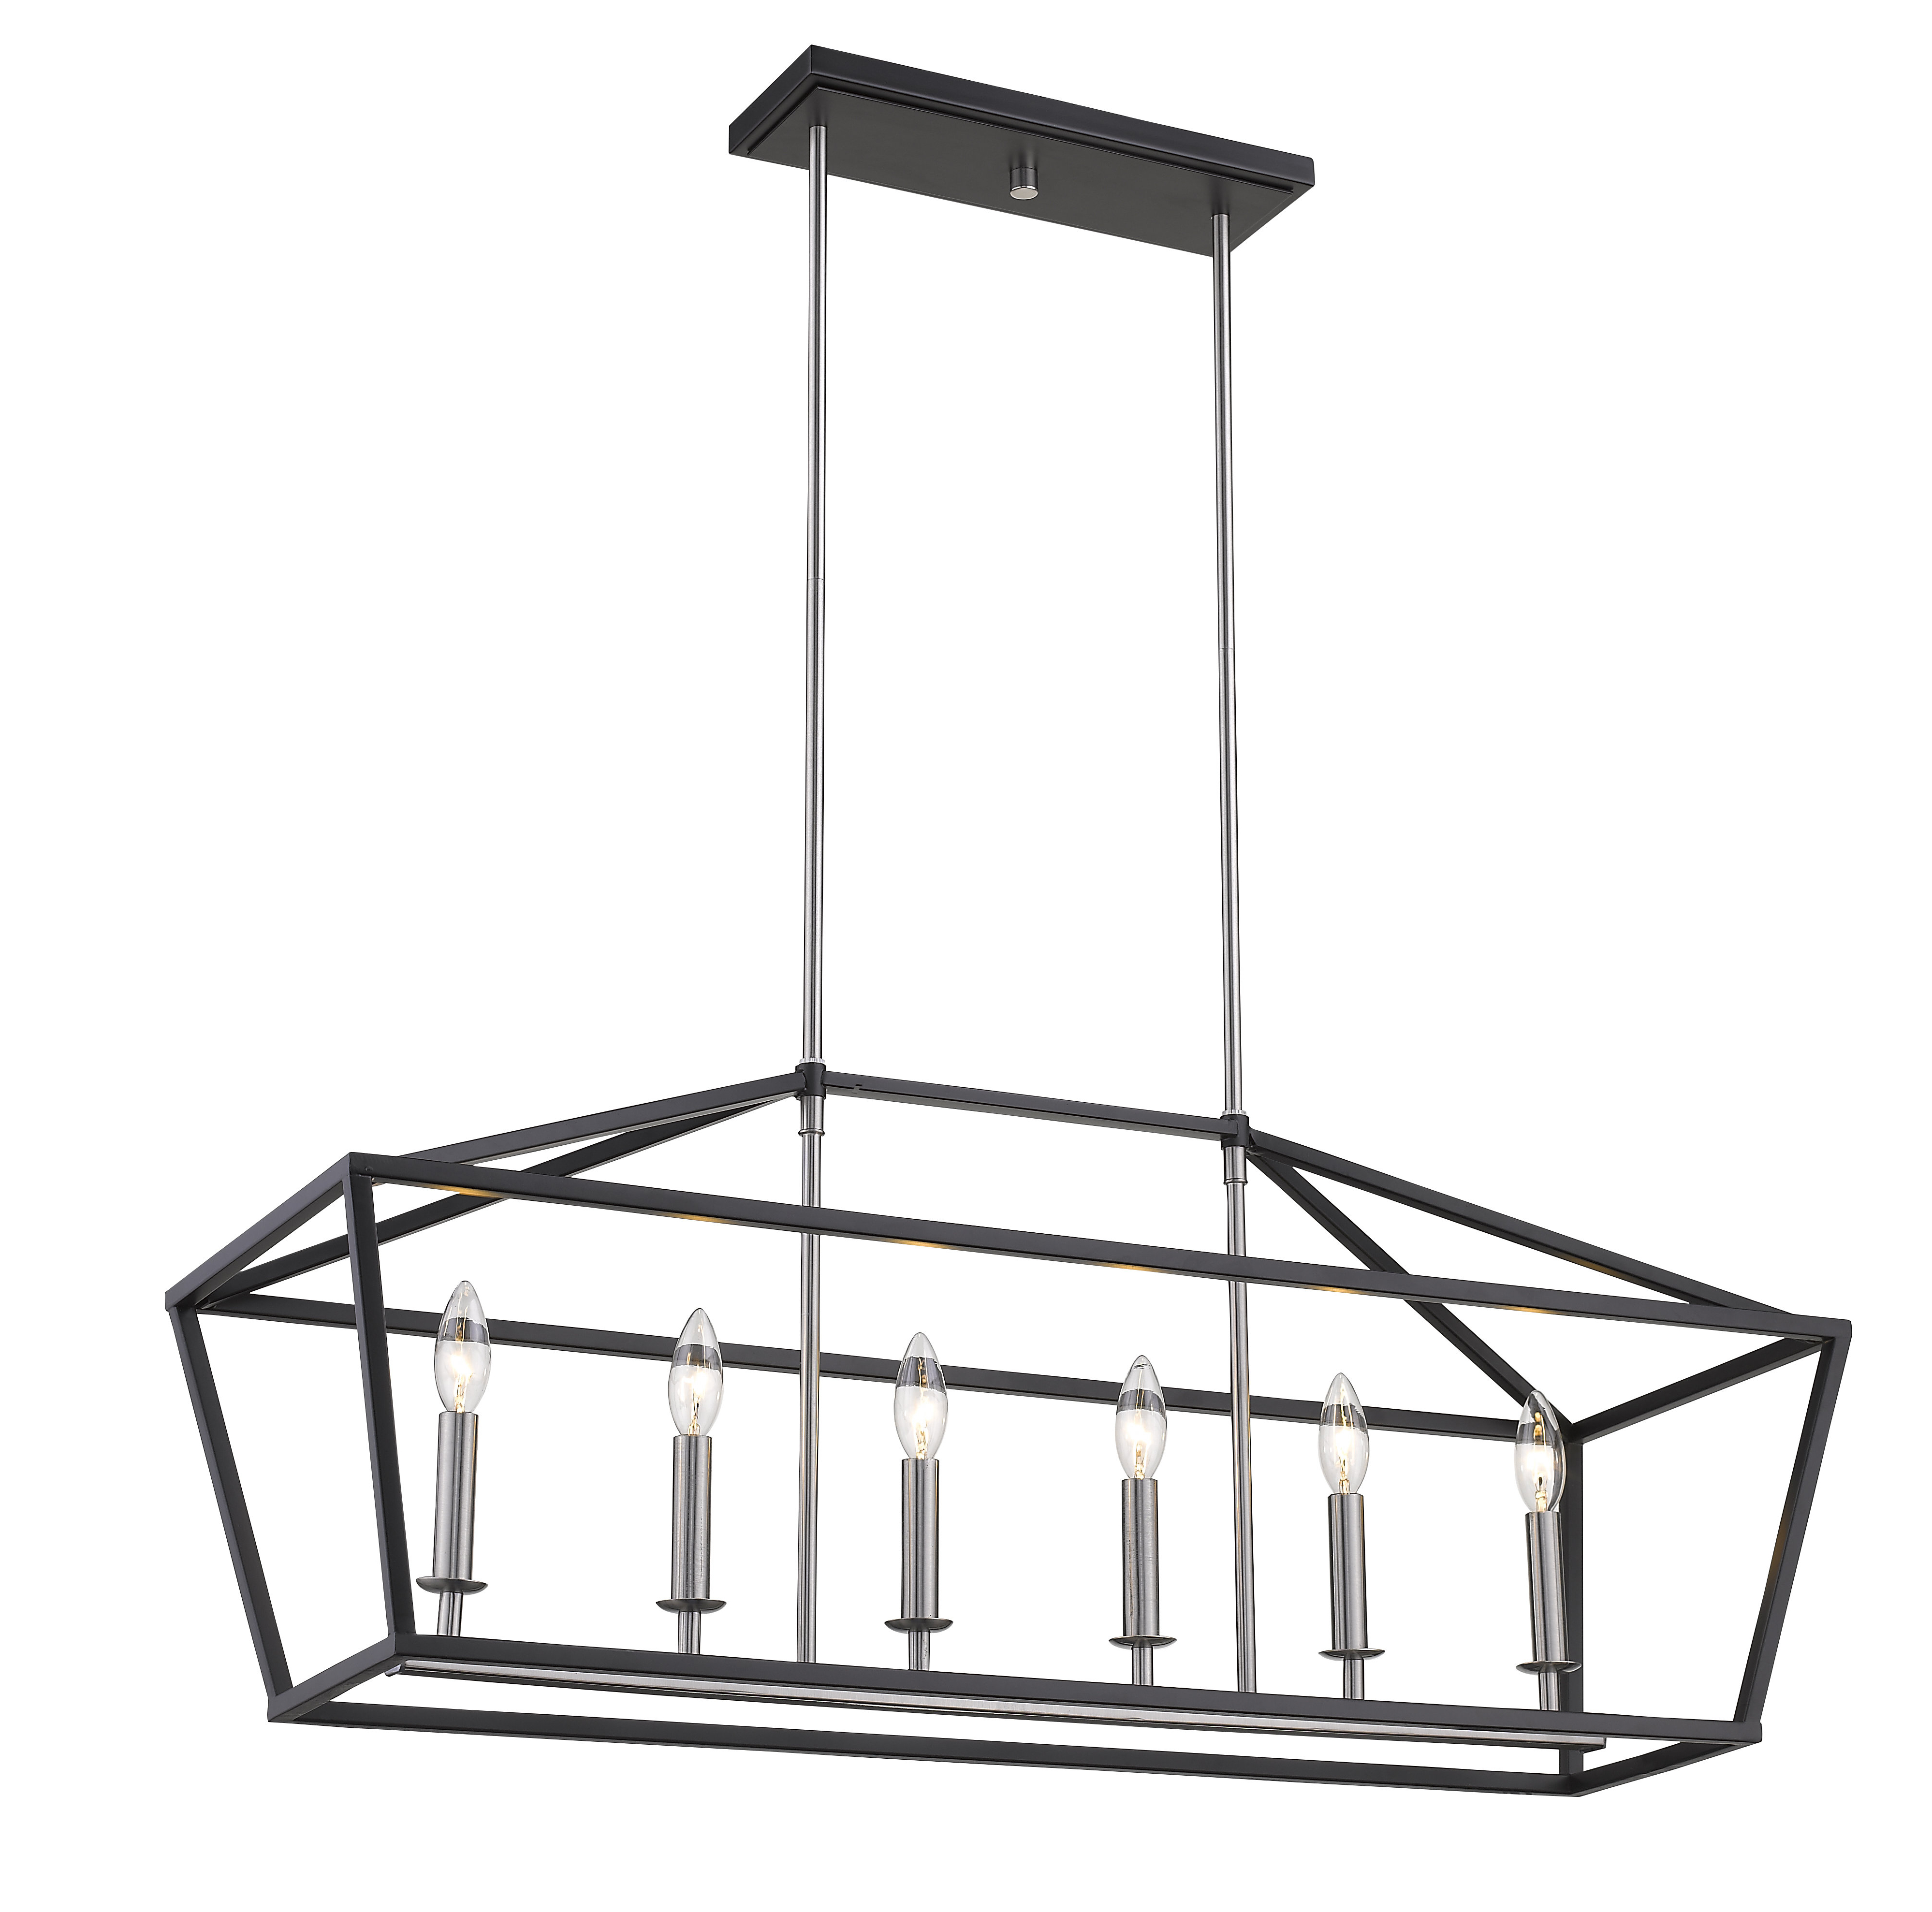 Best And Newest Carmen 6 Light Kitchen Island Linear Pendants With Regard To Sinkler 6 Light Kitchen Island Pendant (View 7 of 25)